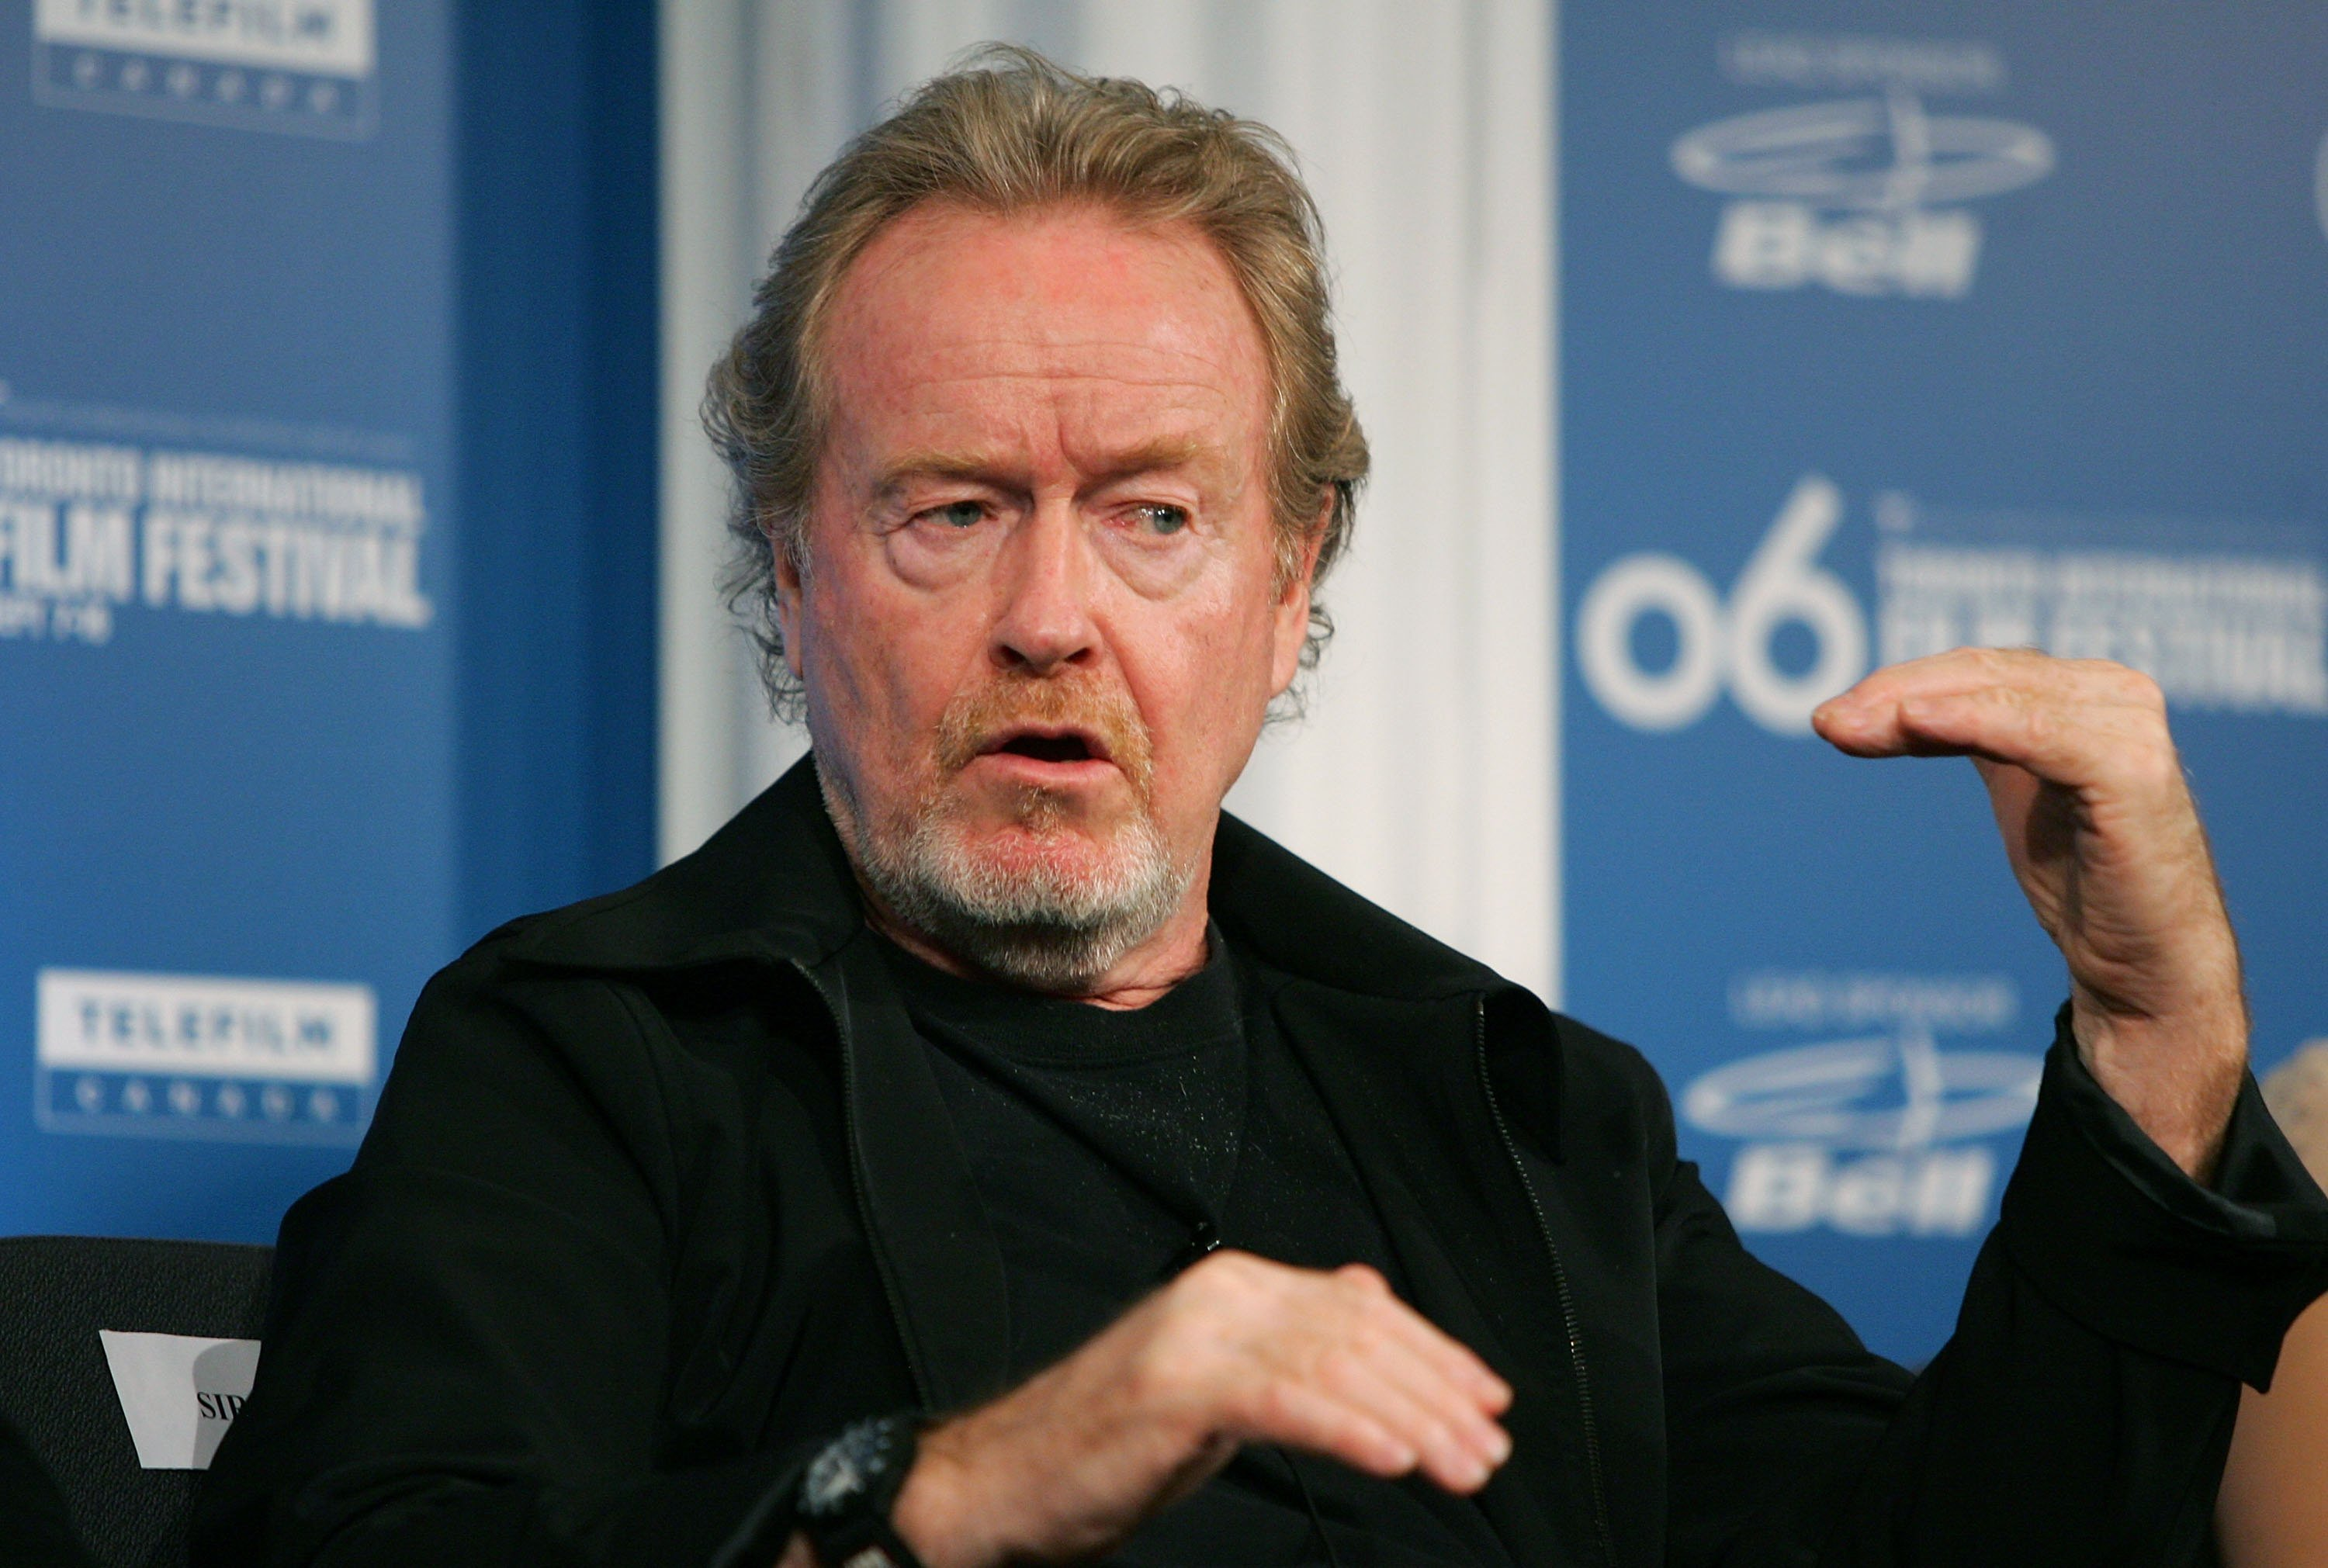 Image Credits: Getty Images | Director Ridley Scott is a firm believer